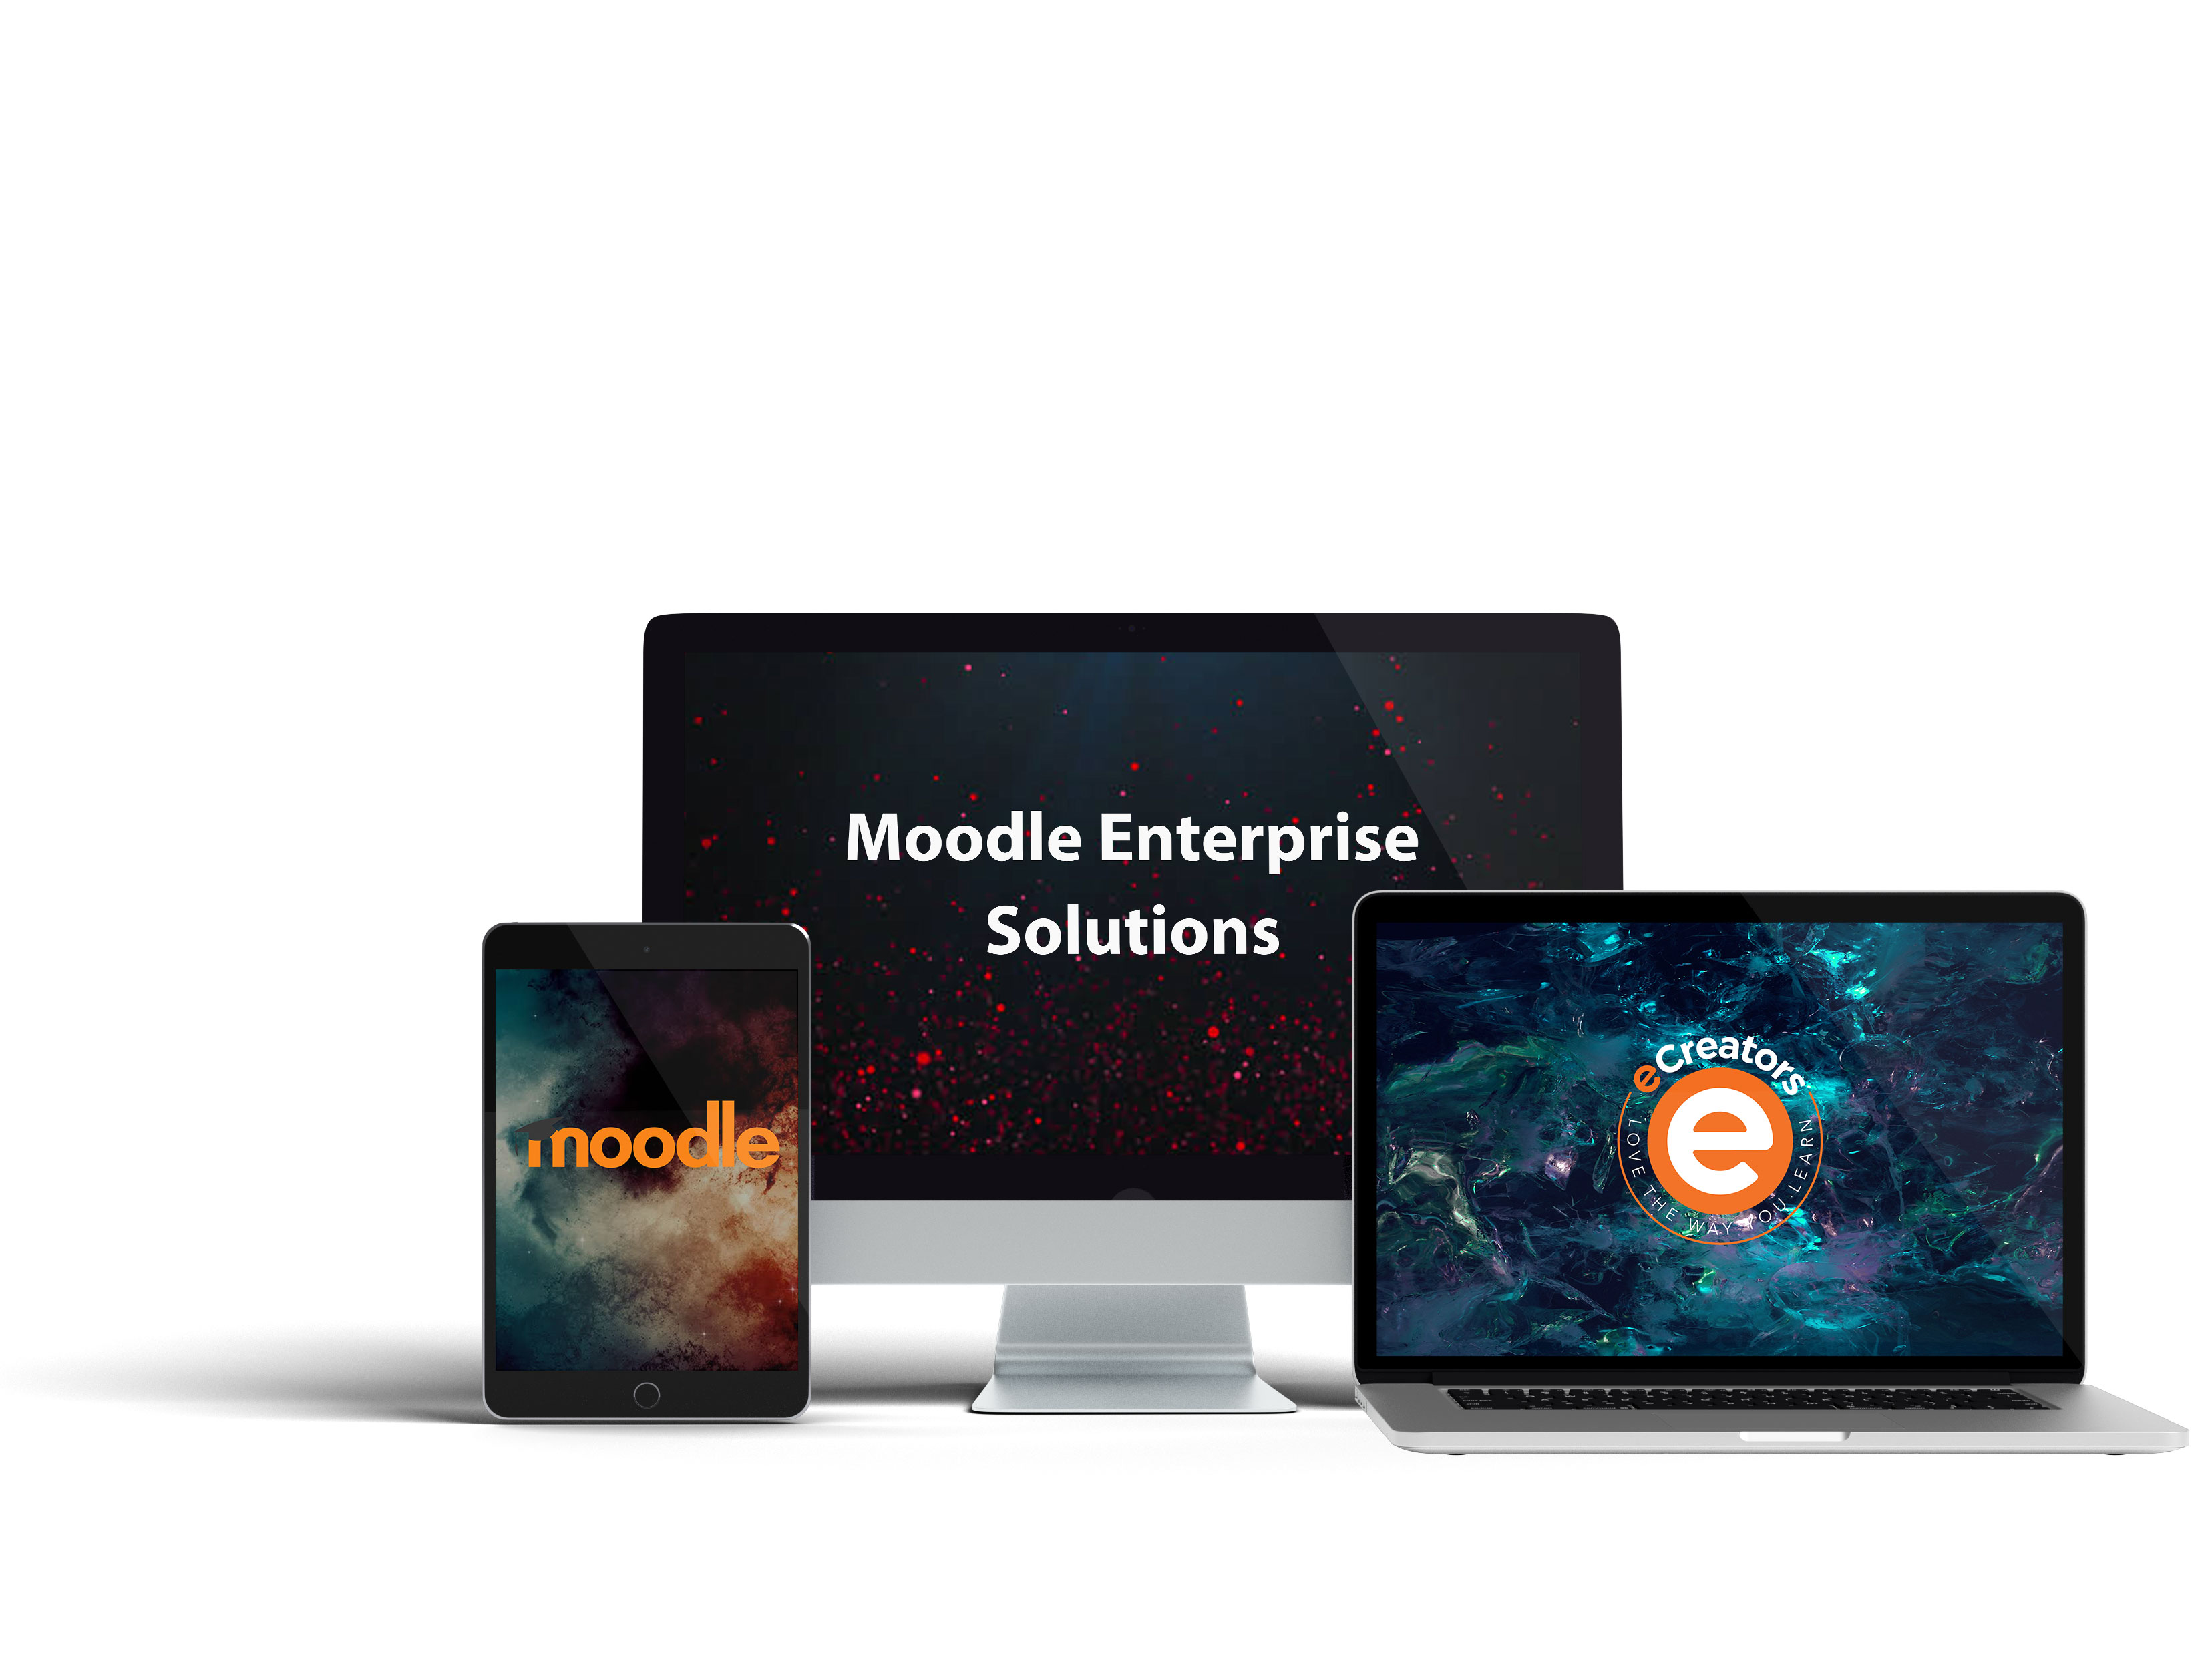 Moodle Enterprise Solutions